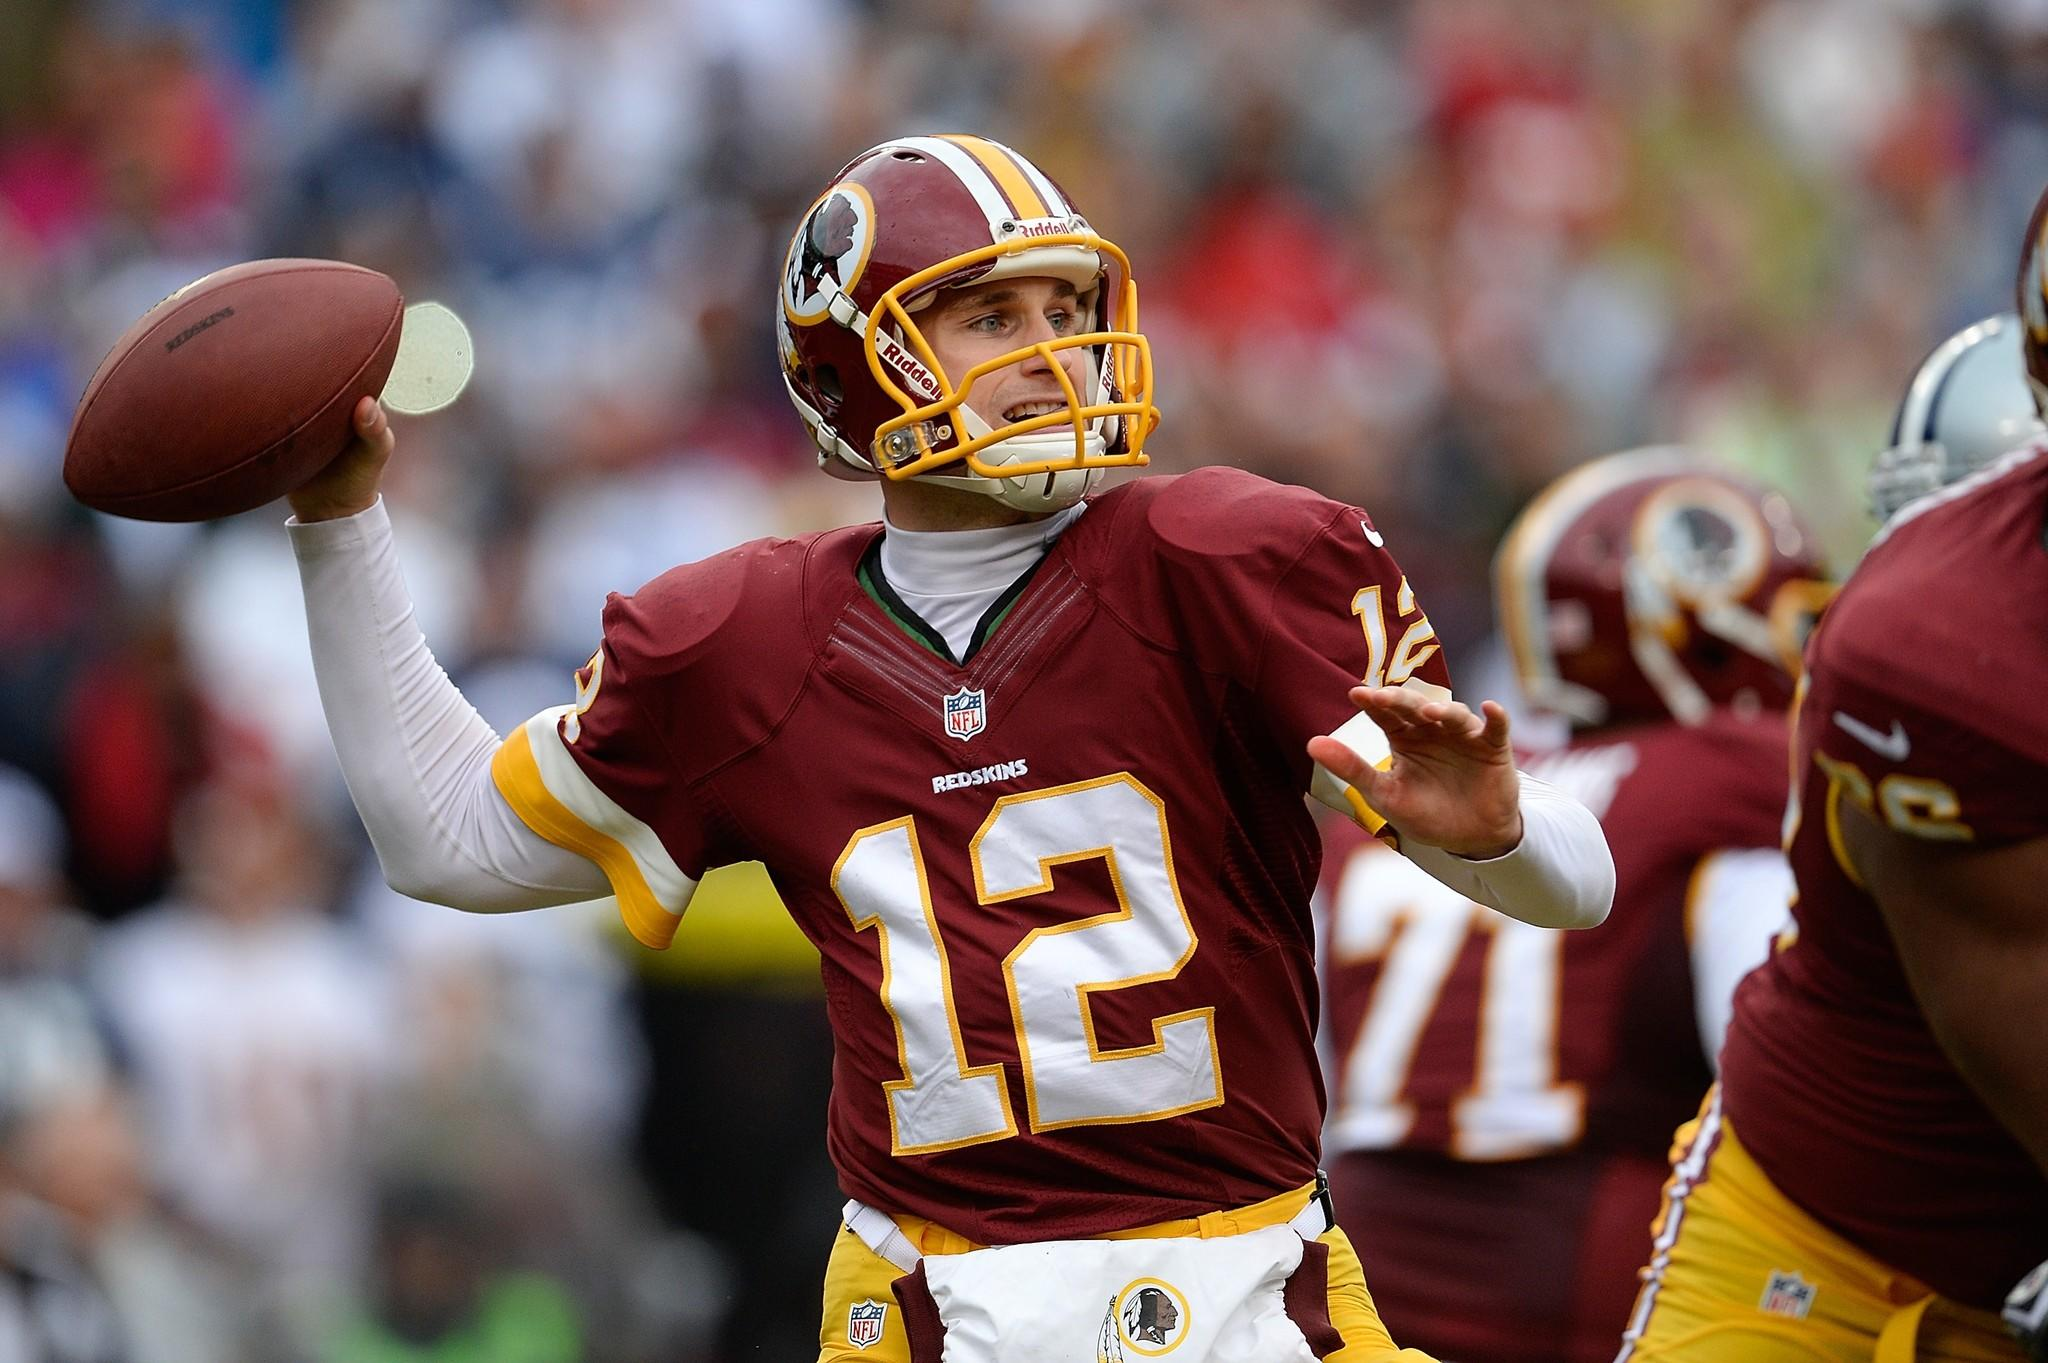 LANDOVER, MD - DECEMBER 22: Quarterback Kirk Cousins #12 of the Washington Redskins throws a pass in the first quarter during an NFL game against the Dallas Cowboys at FedExField on December 22, 2013 in Landover, Maryland. (Photo by Patrick McDermott/Getty Images) ORG XMIT: 187480847